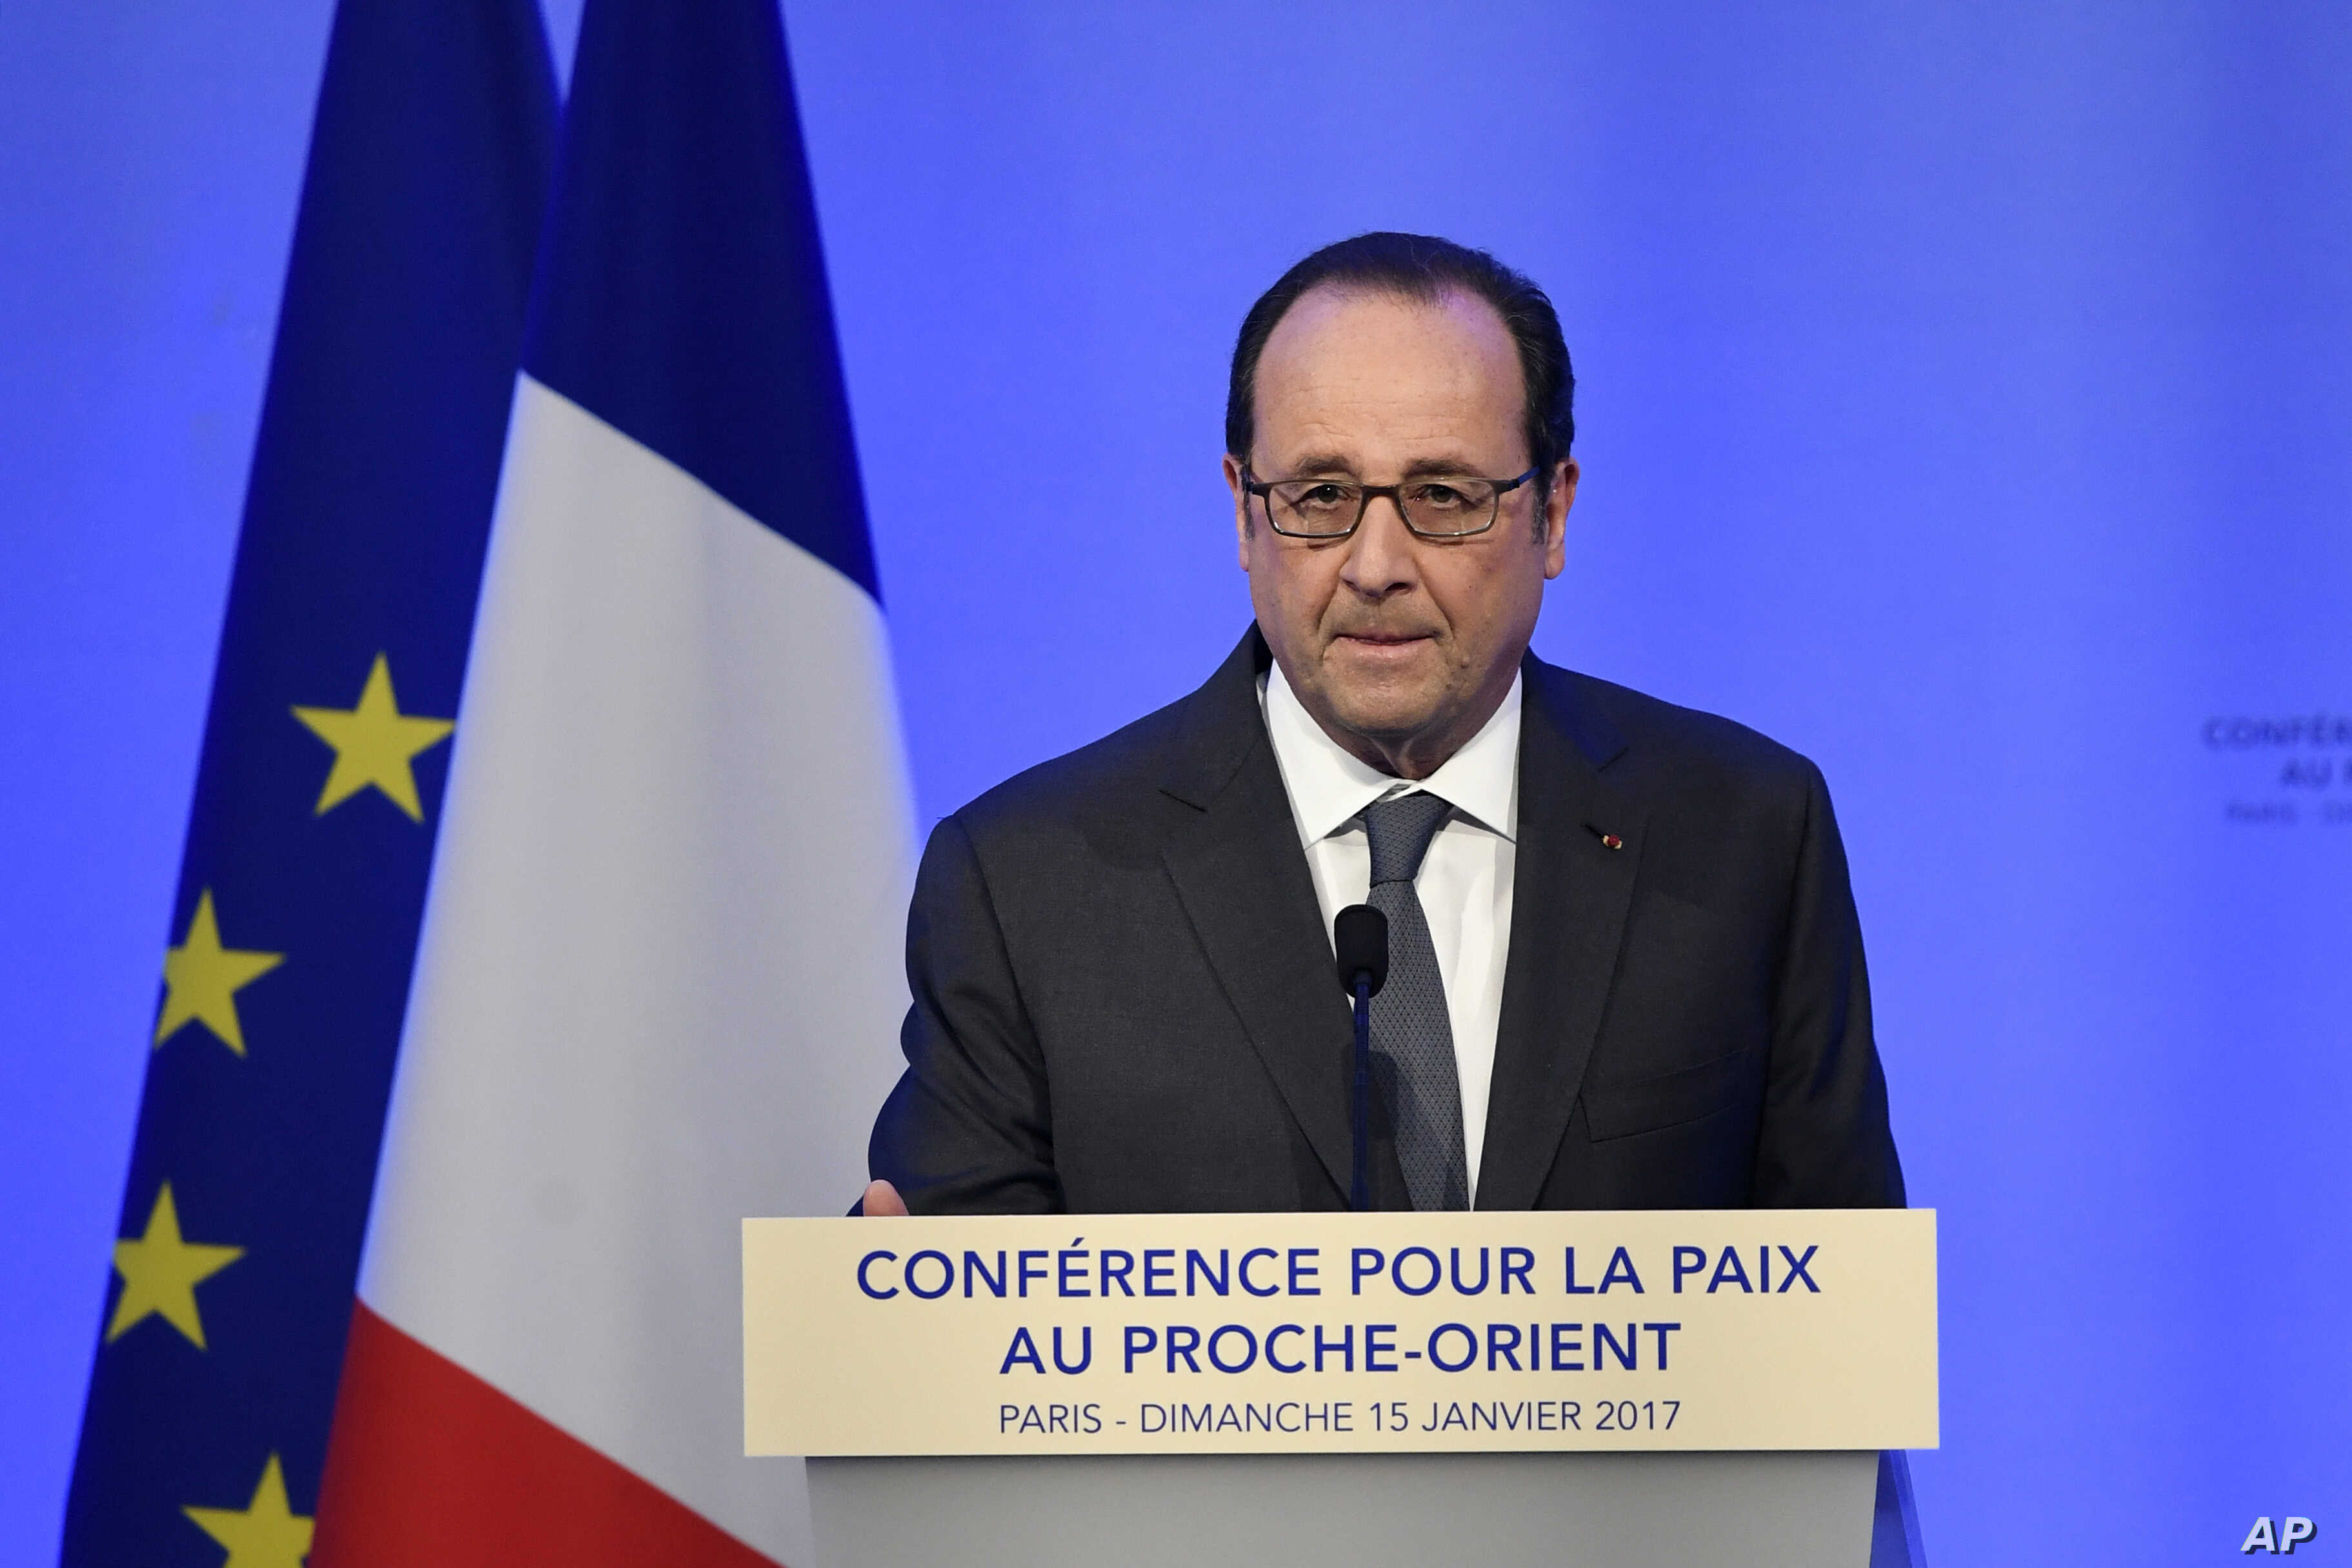 French President Francois Hollande delivers his speech at the opening of the Mideast peace conference in Paris, Sunday, Jan. 15, 2017.